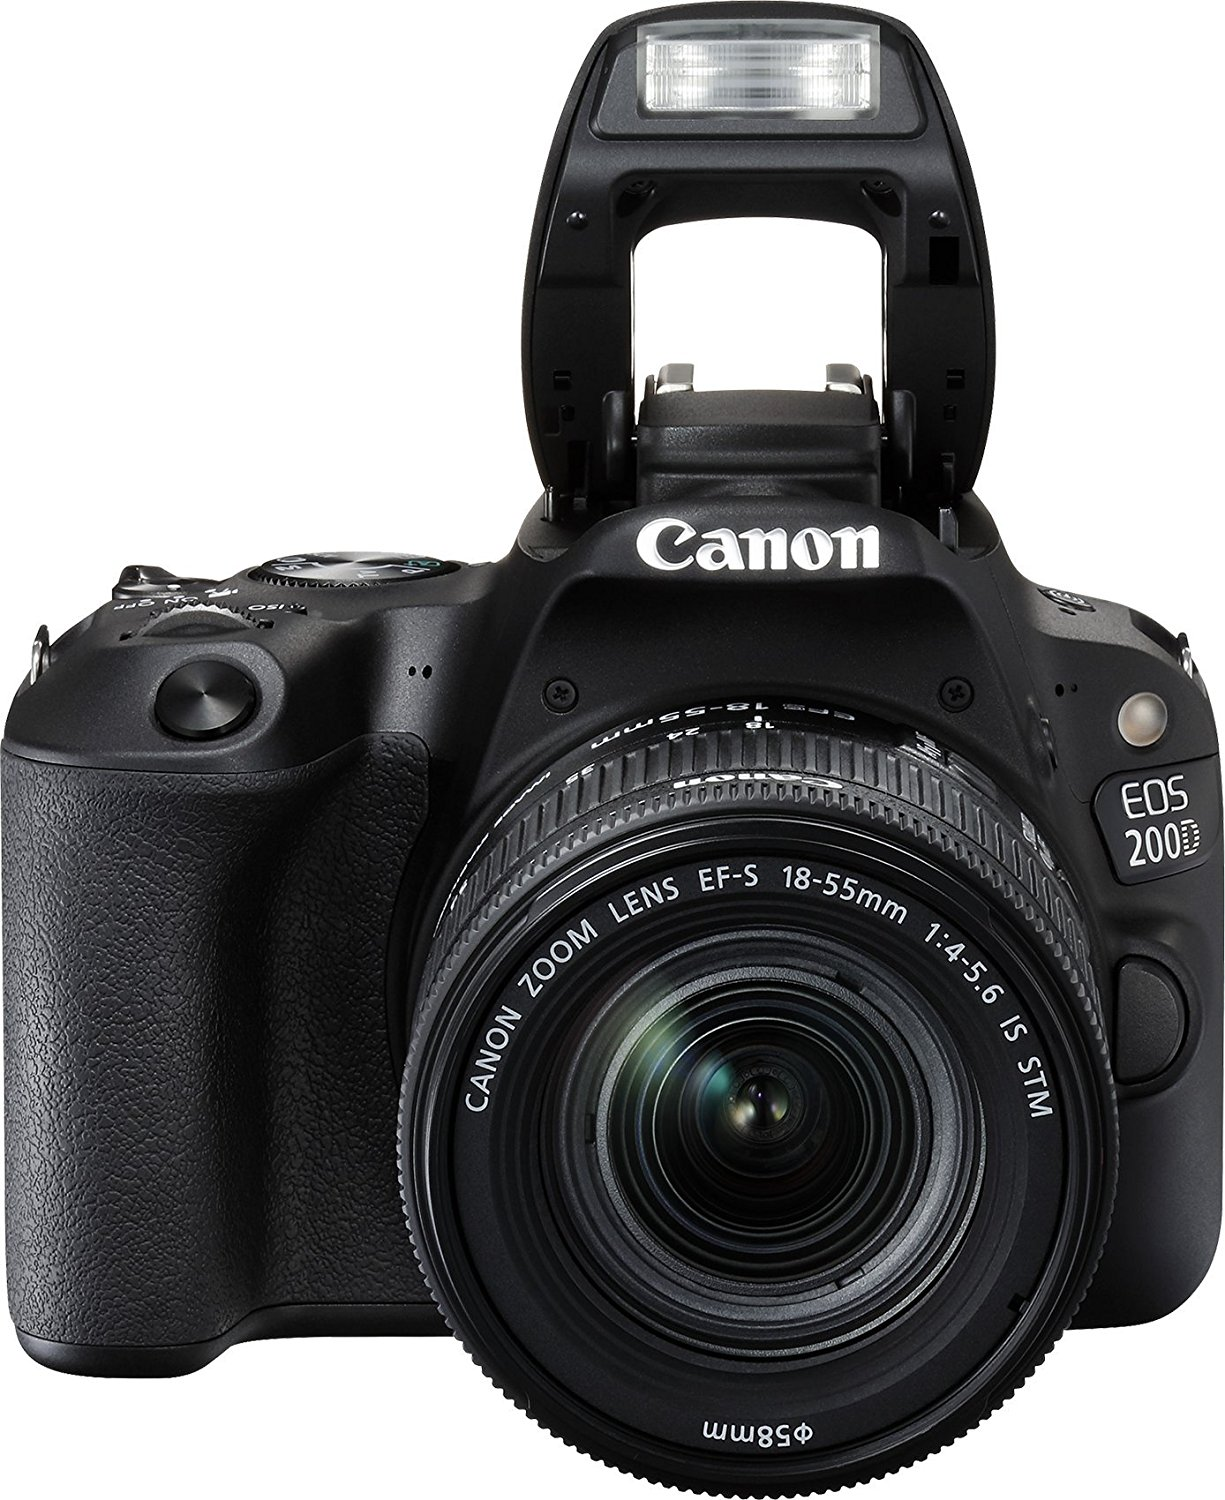 Canon EOS 200D 24.2MP Digital SLR Camera + EF-S 18-55mm f4 IS STM Lens, Free Camera case and 16GB card